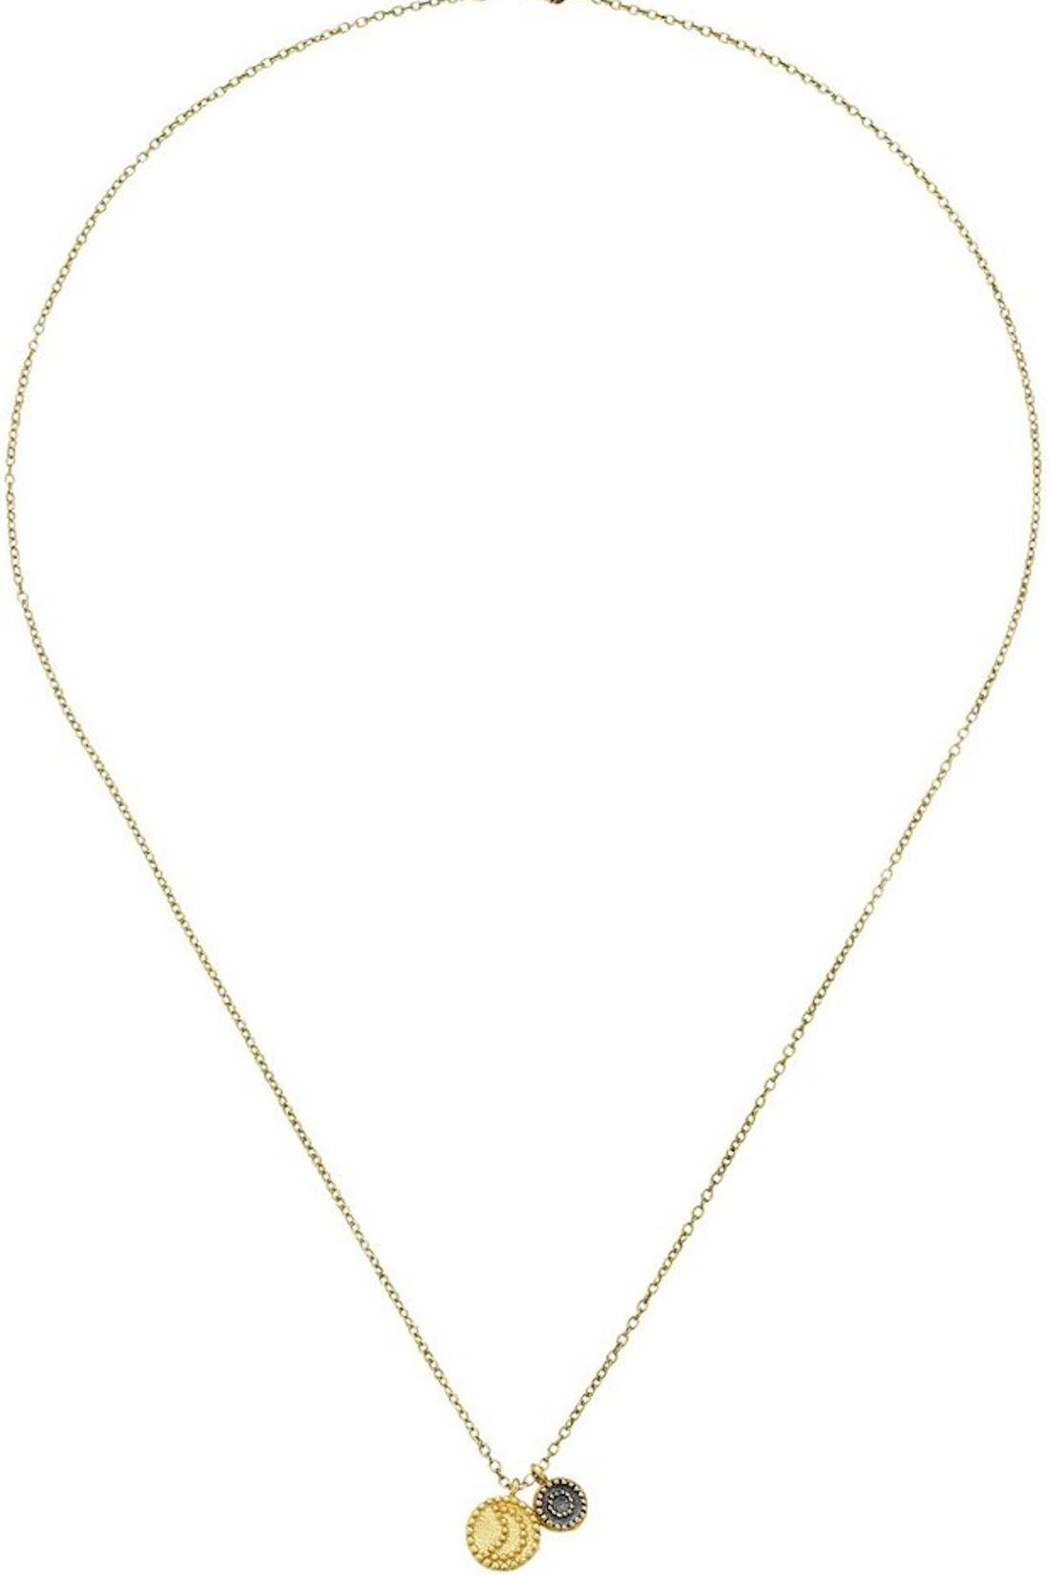 shop satya celestial deals necklace gold jewelry galaxy pyrite on spring shopping